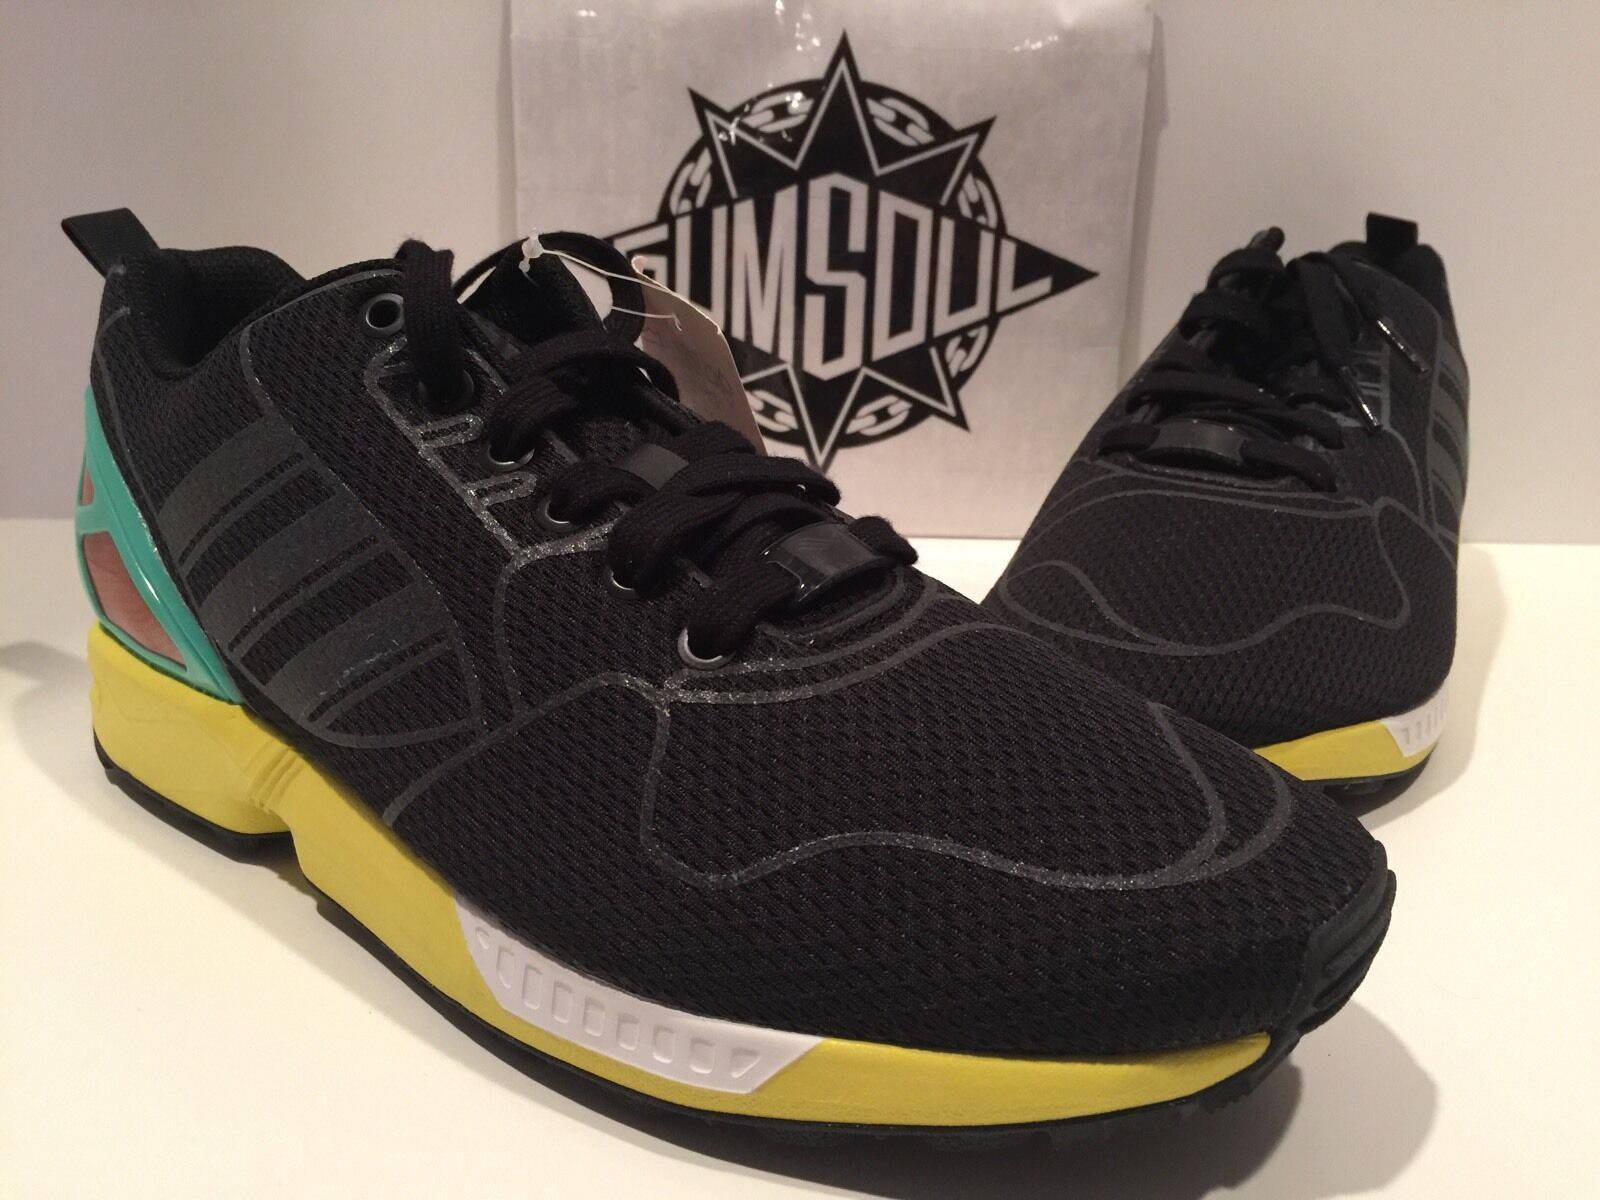 ADIDAS ORIGINALS ZX FLUX COMMUTER PACK 3M LIMITED TO 333 PAIRS B24619